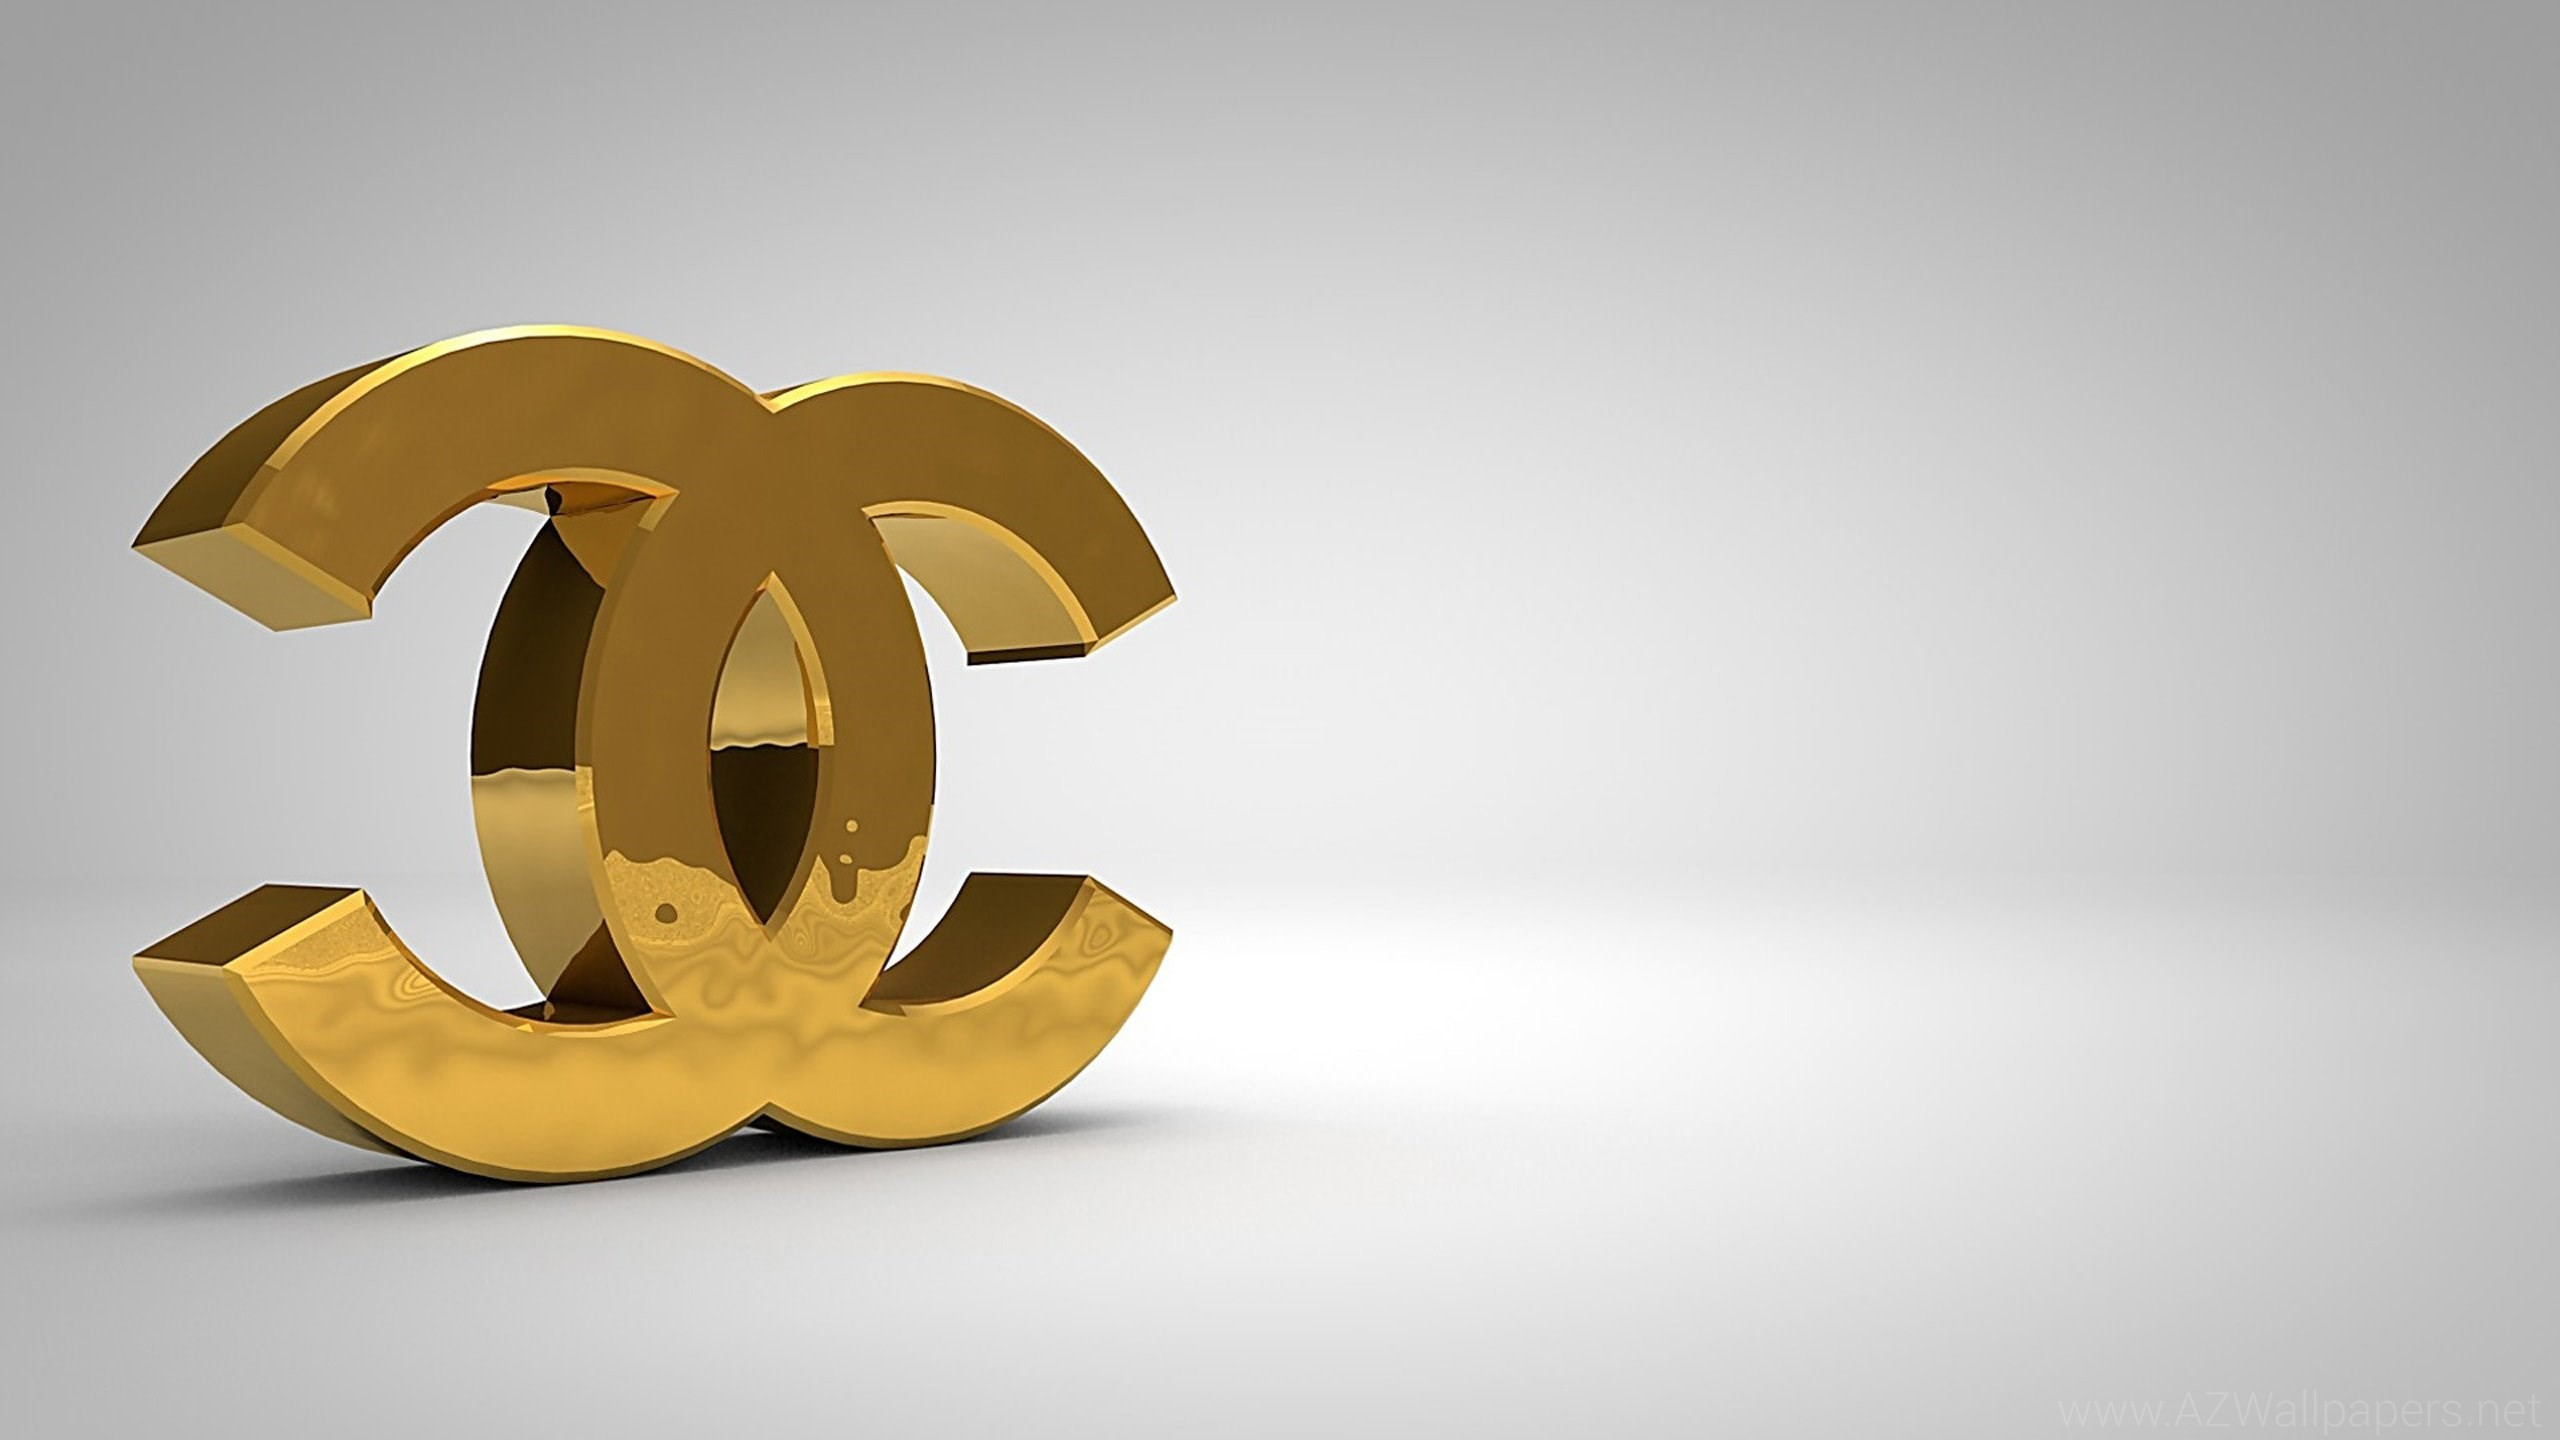 Wallpaper Black And Gold Cute Chanel Wallpapers Backgrounds Free Download Pixelstalk Net